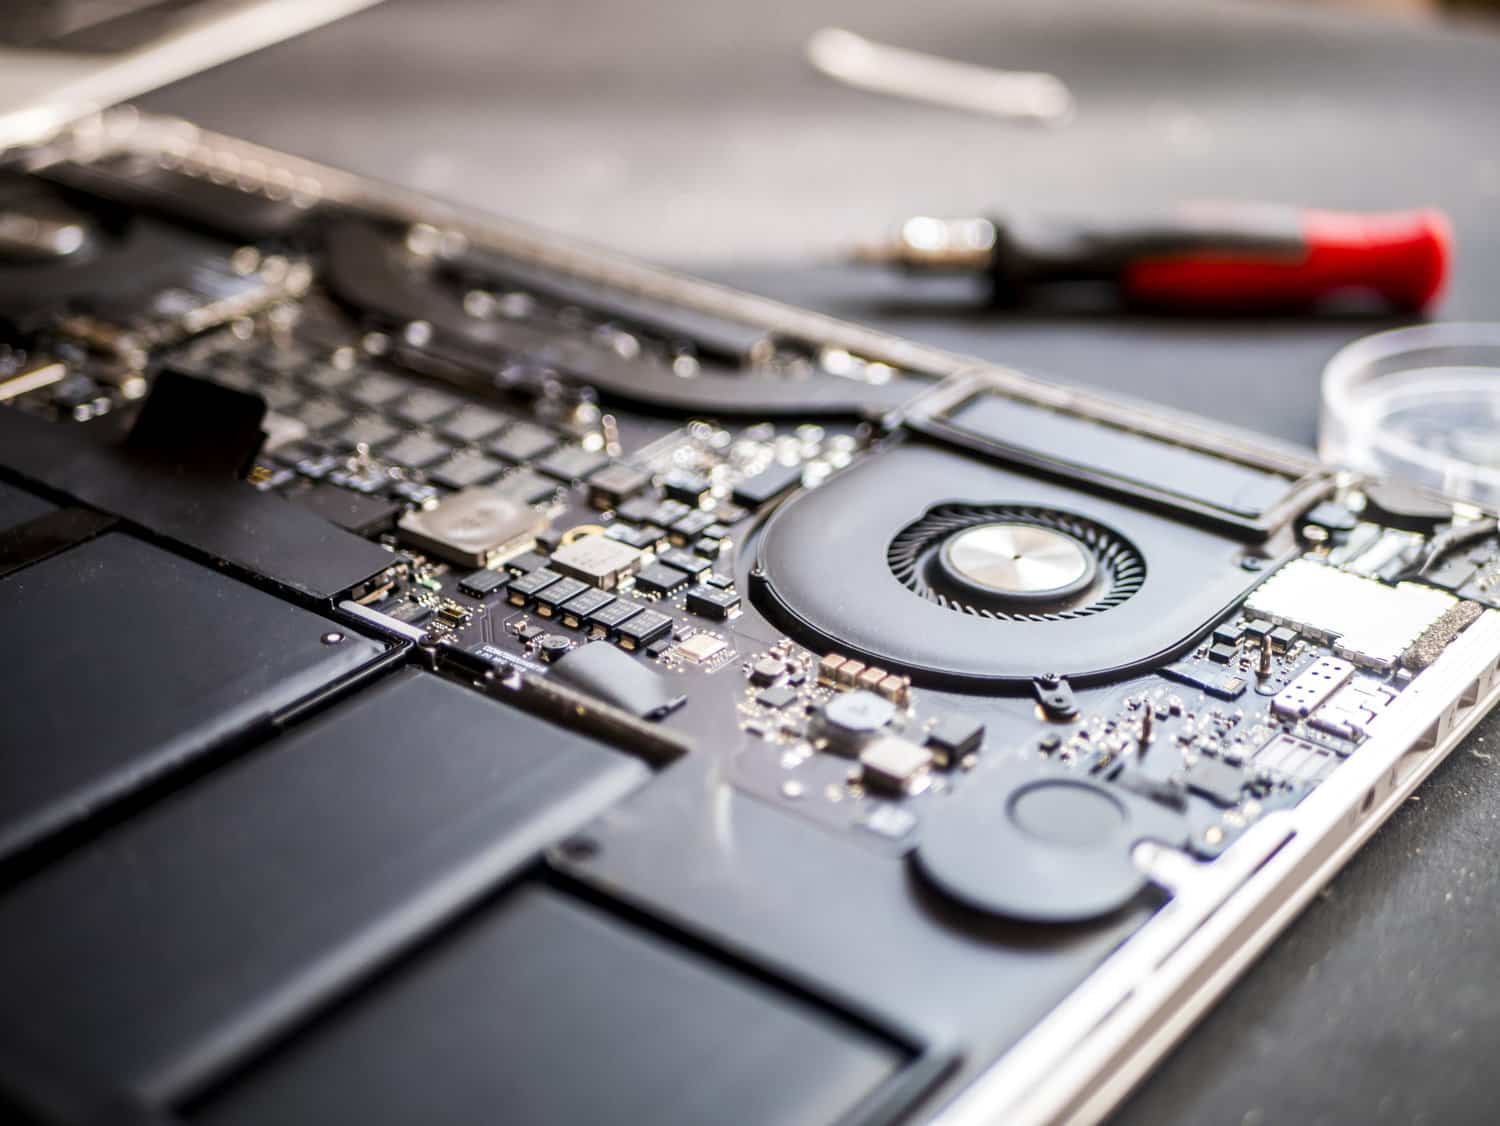 Macbook Pro A1278, A1286,A1425,A1502,A1398,A1706,A1707,A1708 Logic Board Repair Techfix Malaysia